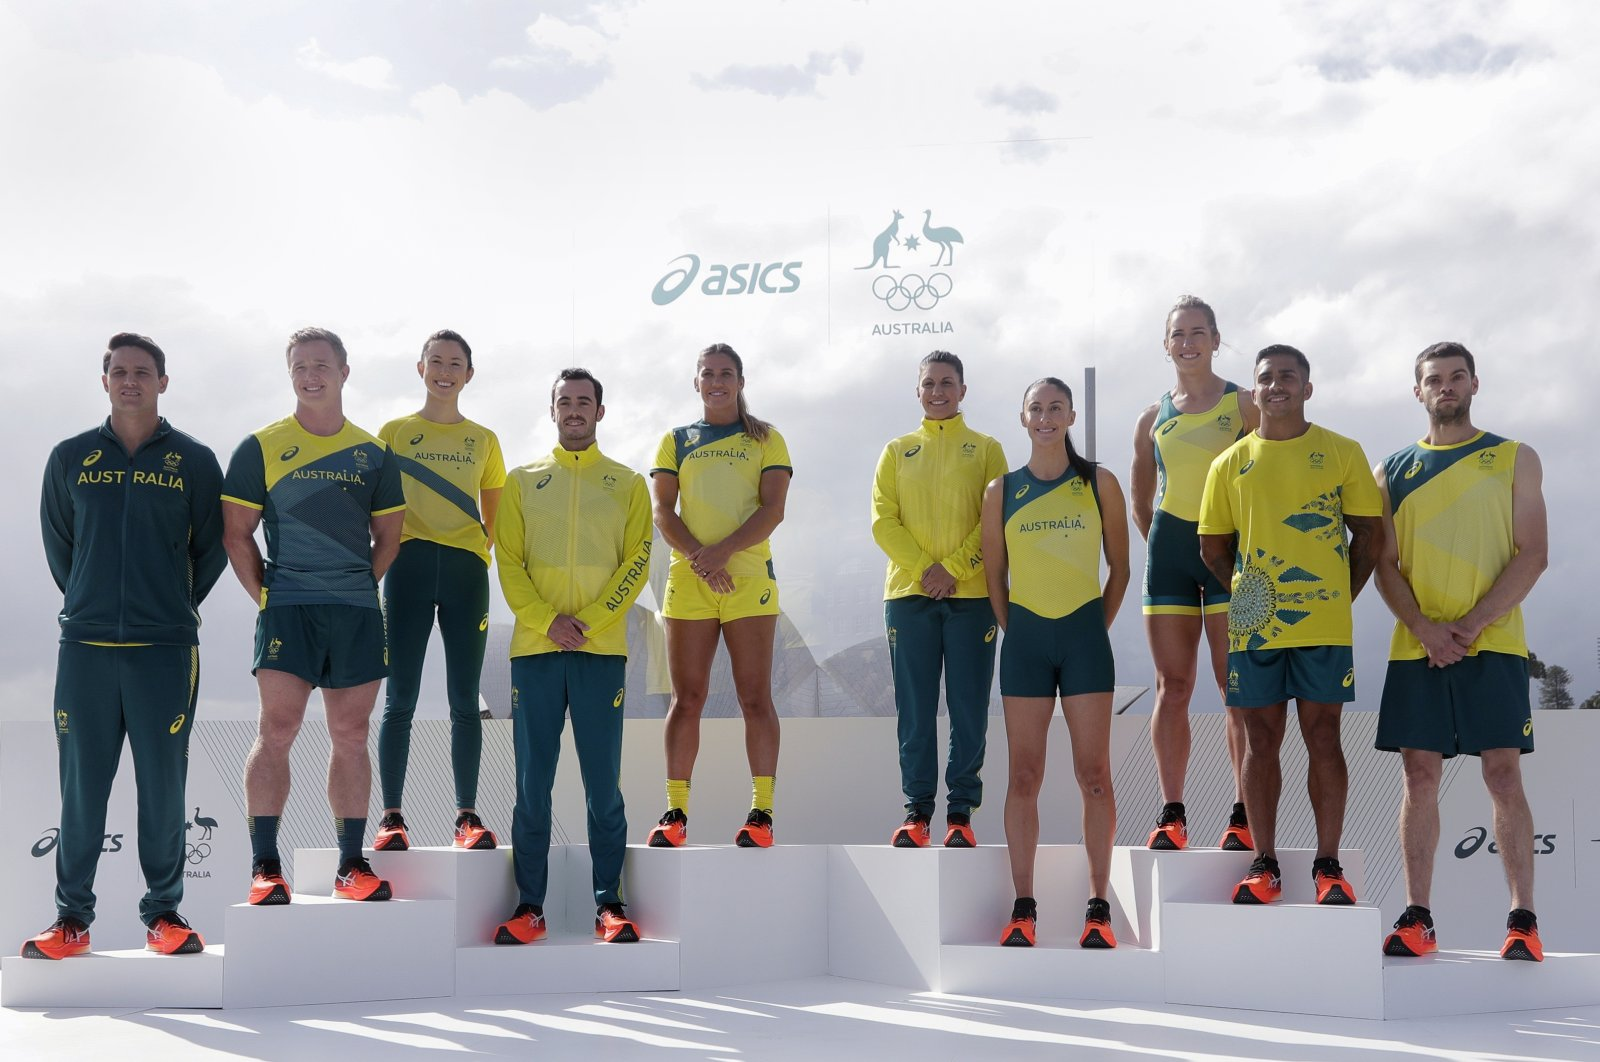 Olympic hopefuls pose for photos in their green and gold competition kits in Sydney, Australia, March 31, 2021. (AP Photo)